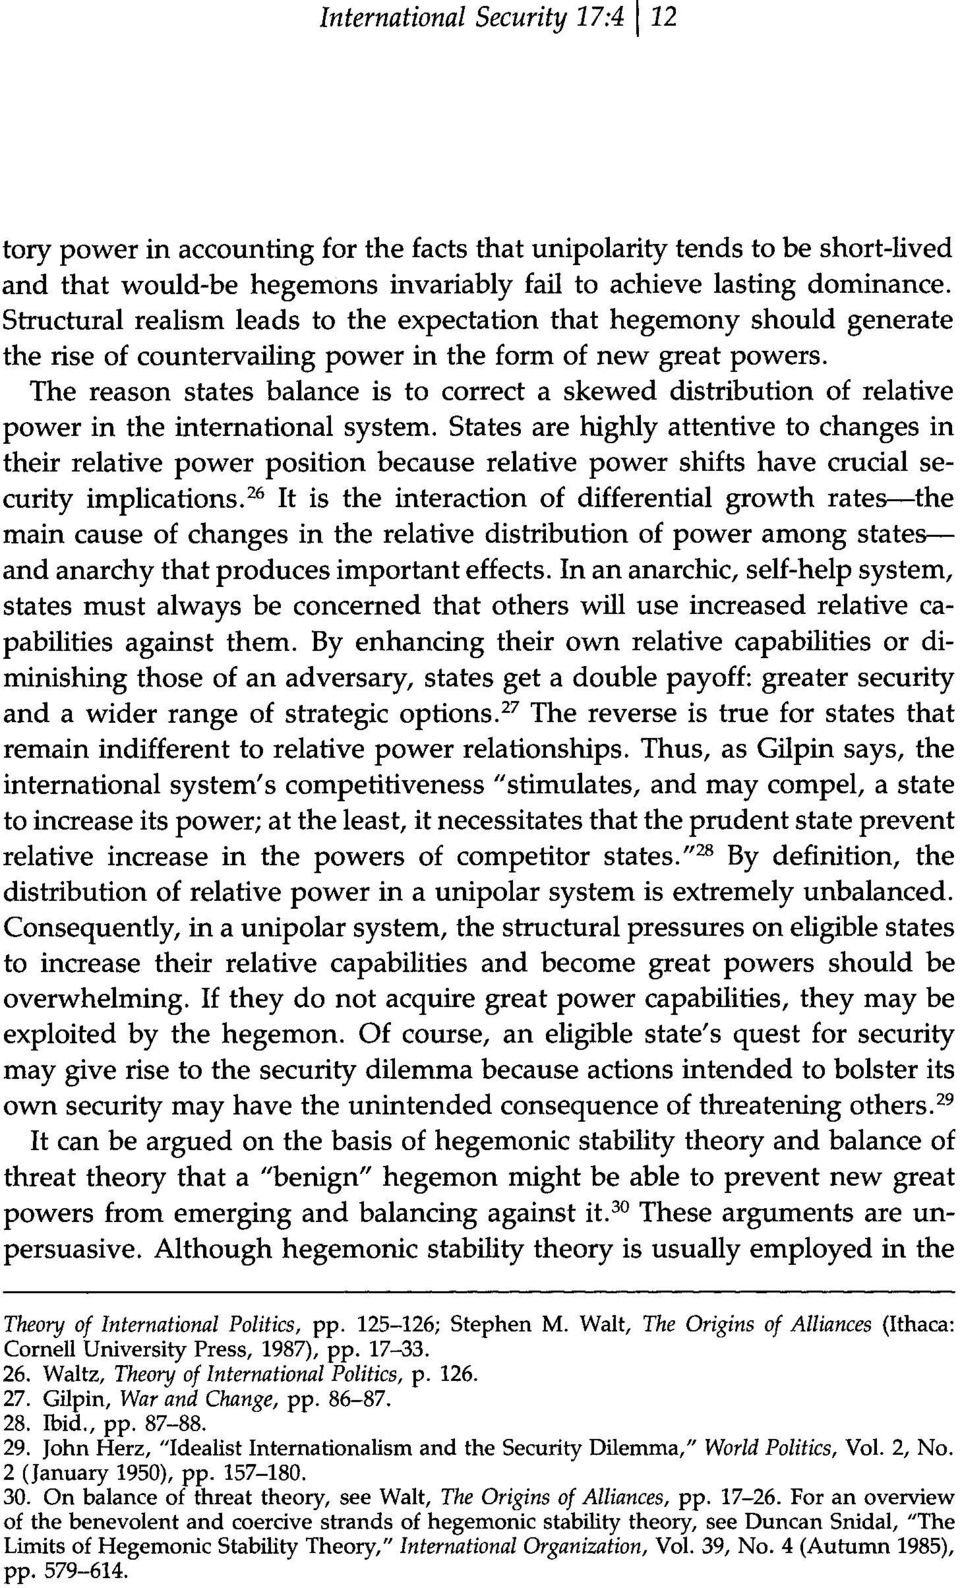 The reason states balance is to correct a skewed distribution of relative power in the international system.